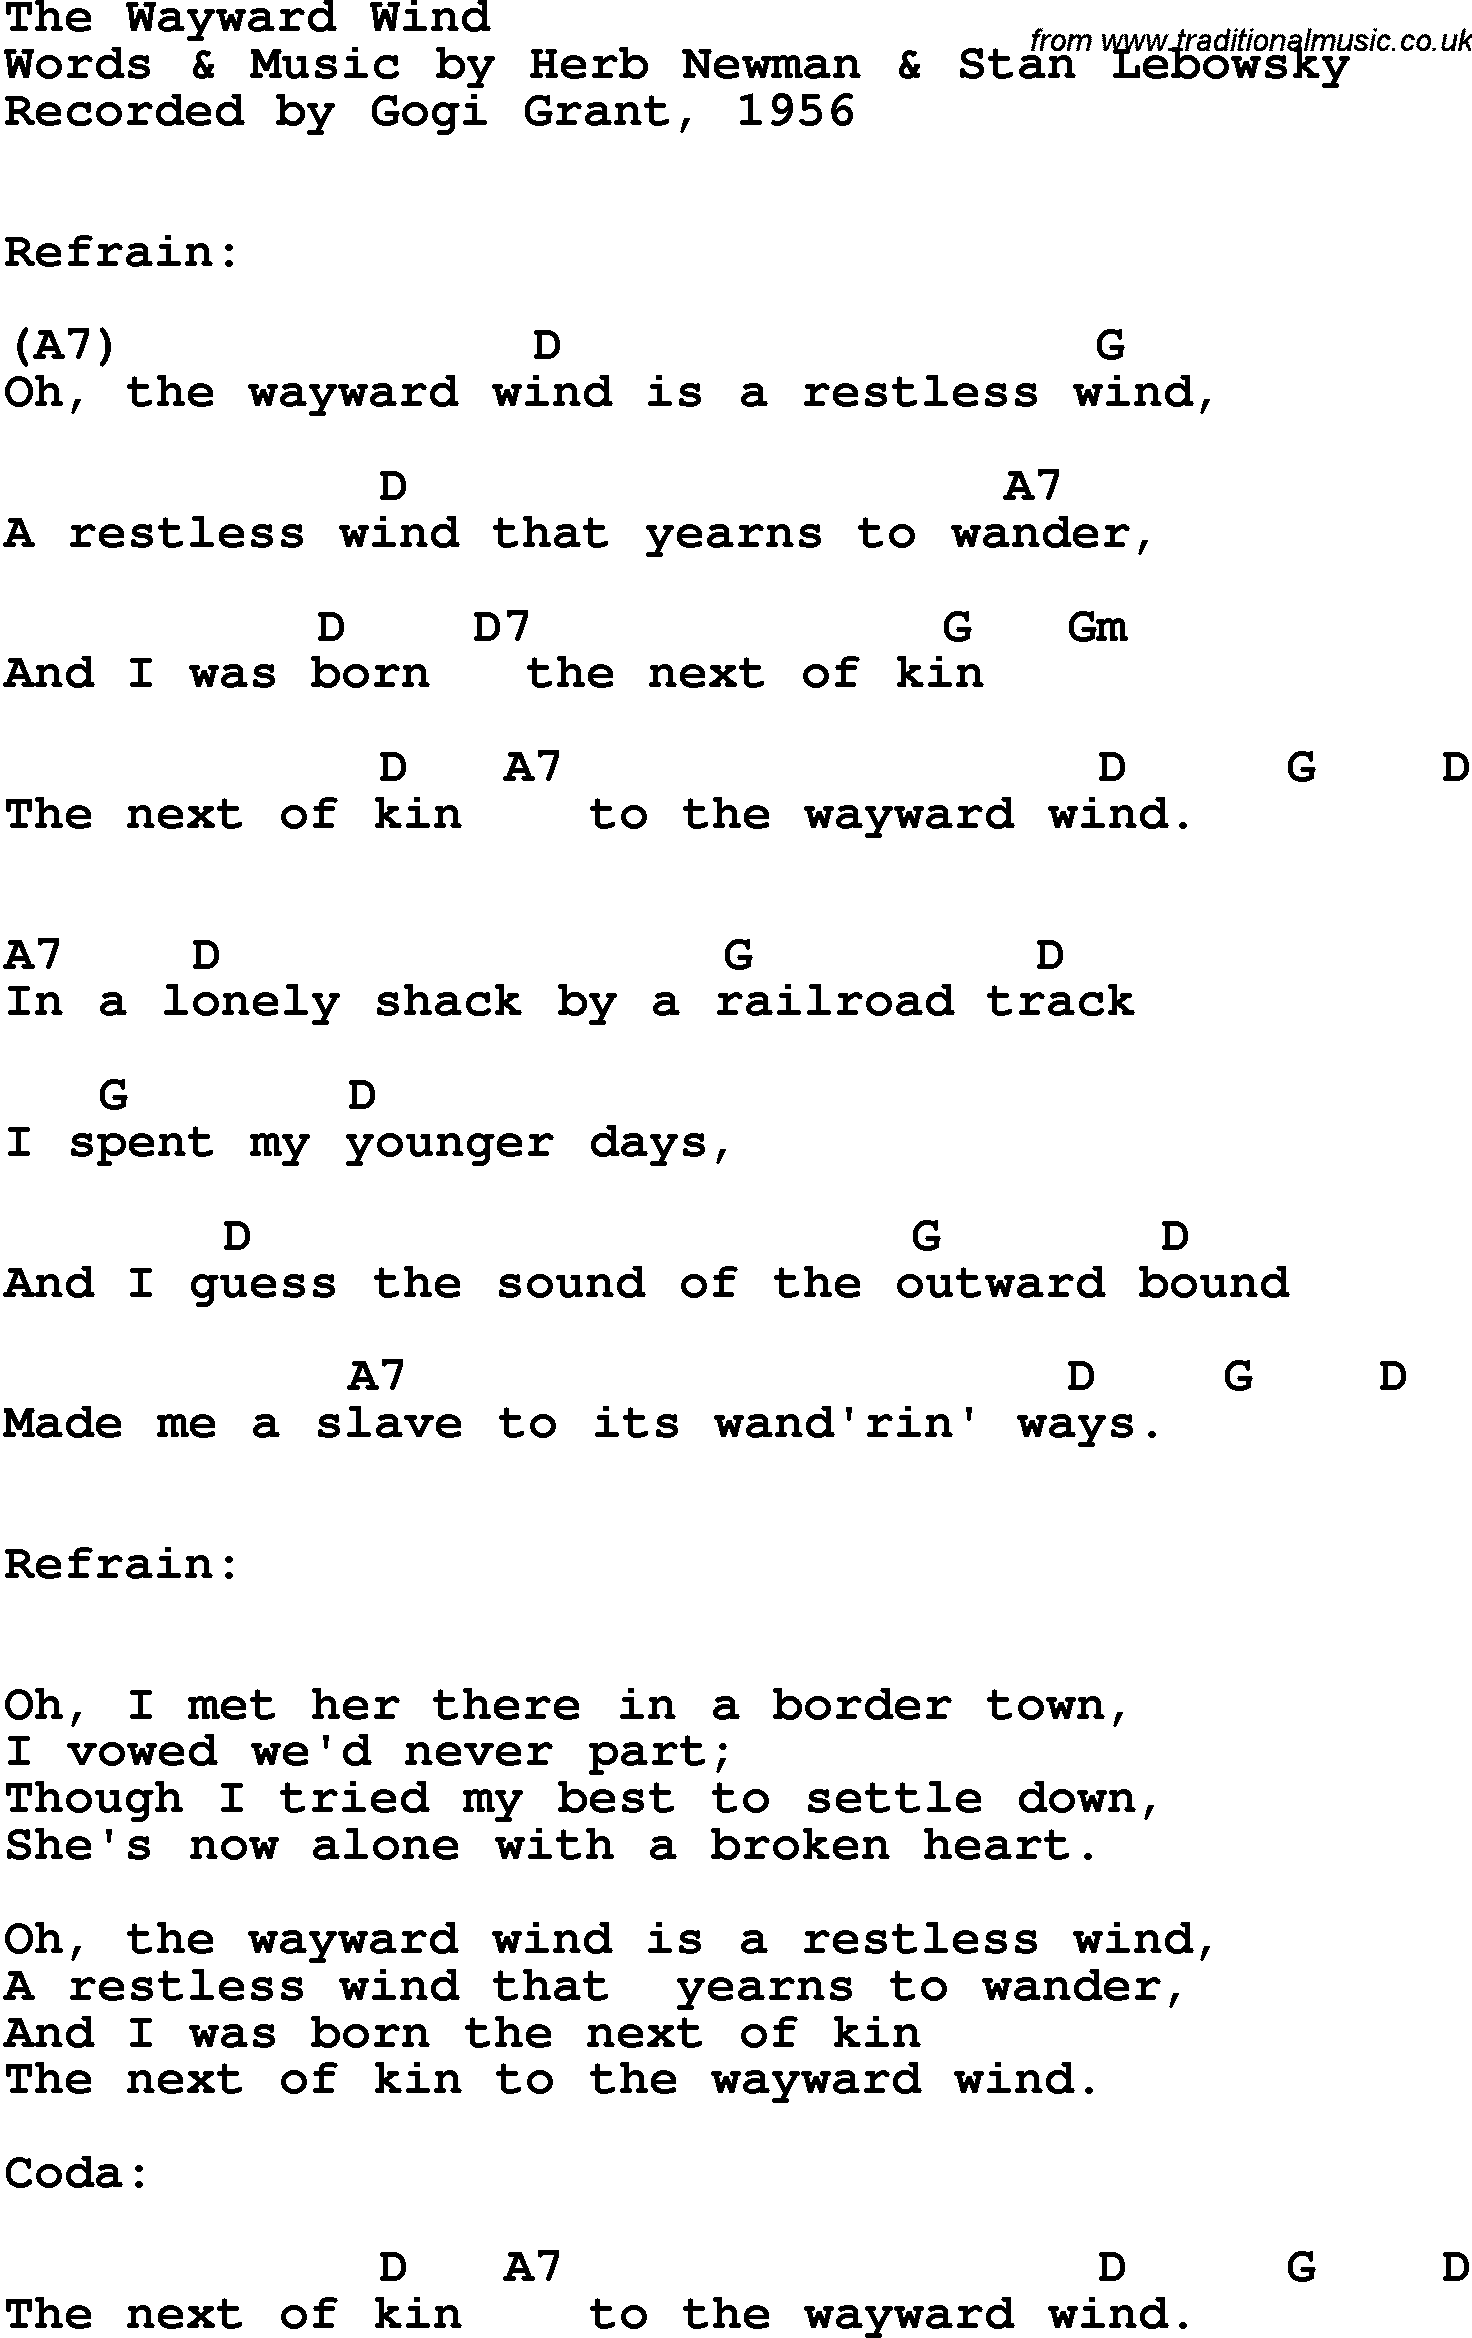 Song Lyrics With Guitar Chords For Wayward Wind The Gogi Grant